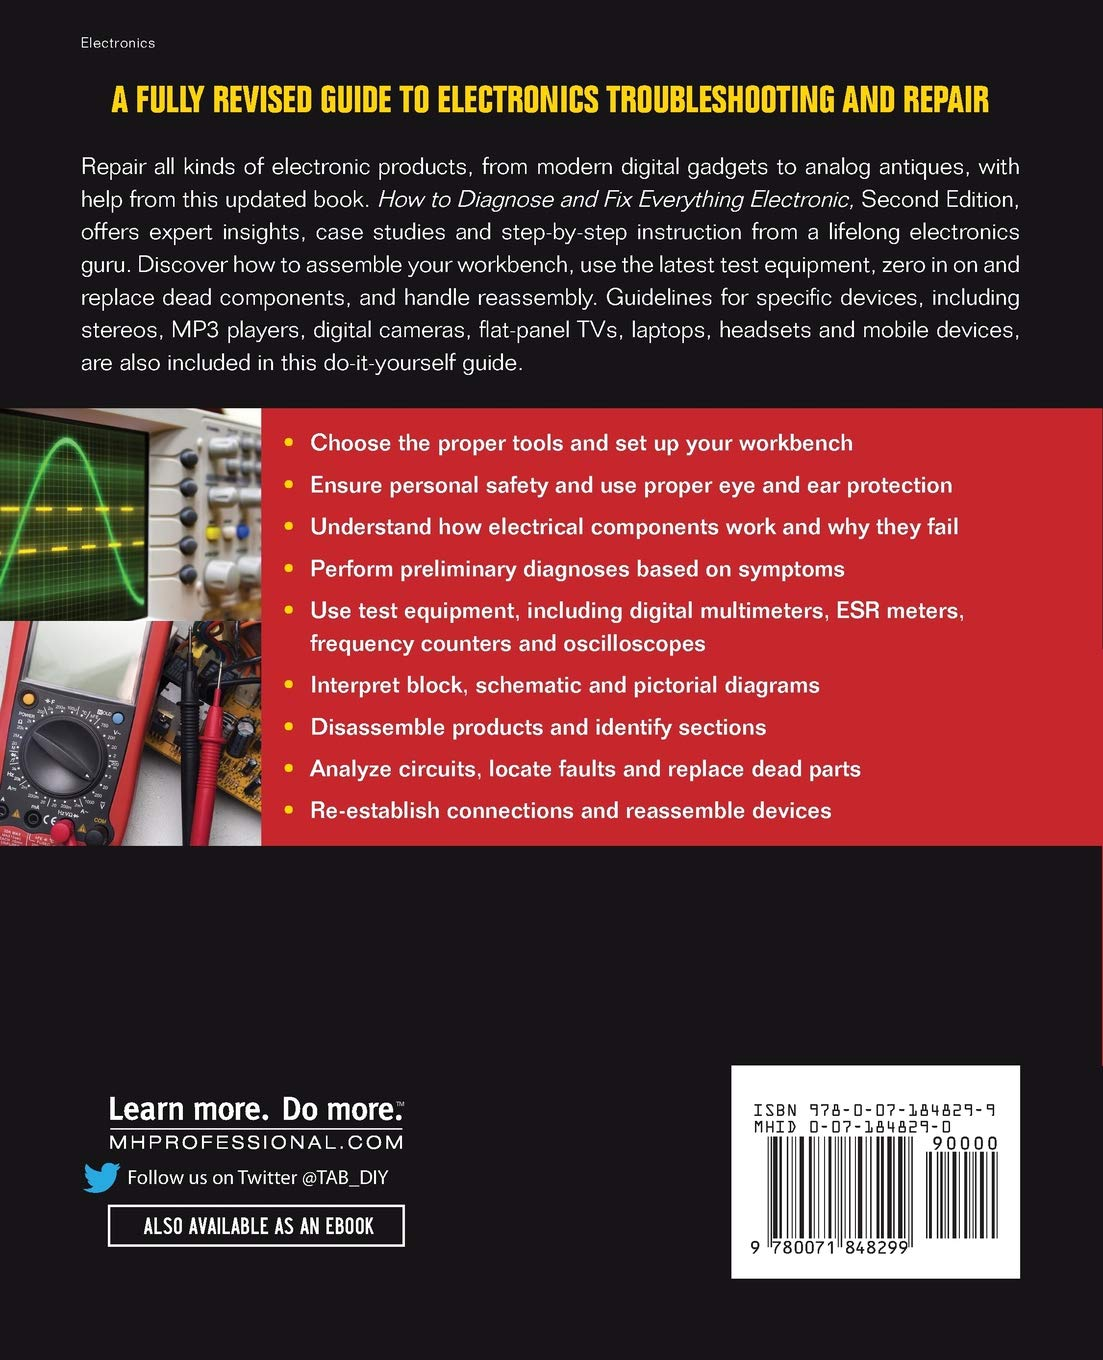 How To Diagnose And Fix Everything Electronic Second Edition Once Is Done The Circuit Properly On A Plastic Box Michael Geier 9780071848299 Books